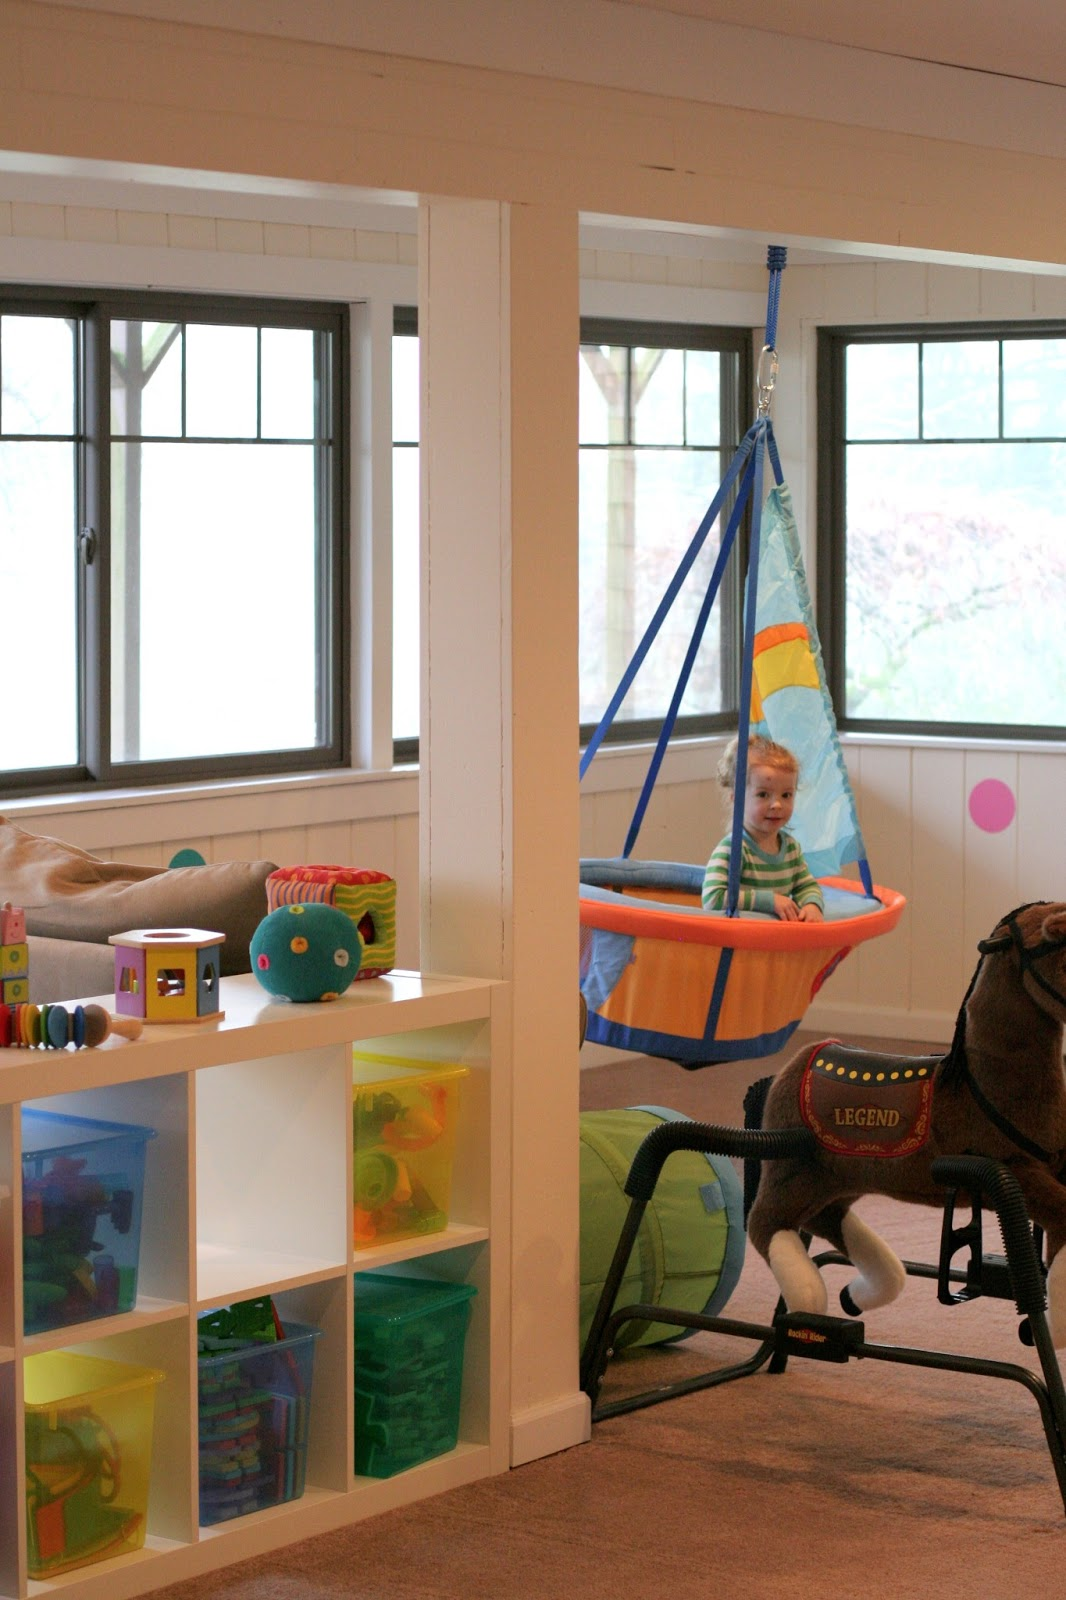 Playroom design diy playroom with rock wall playroom design diy playroom with rock wall from fun at home with kids solutioingenieria Choice Image